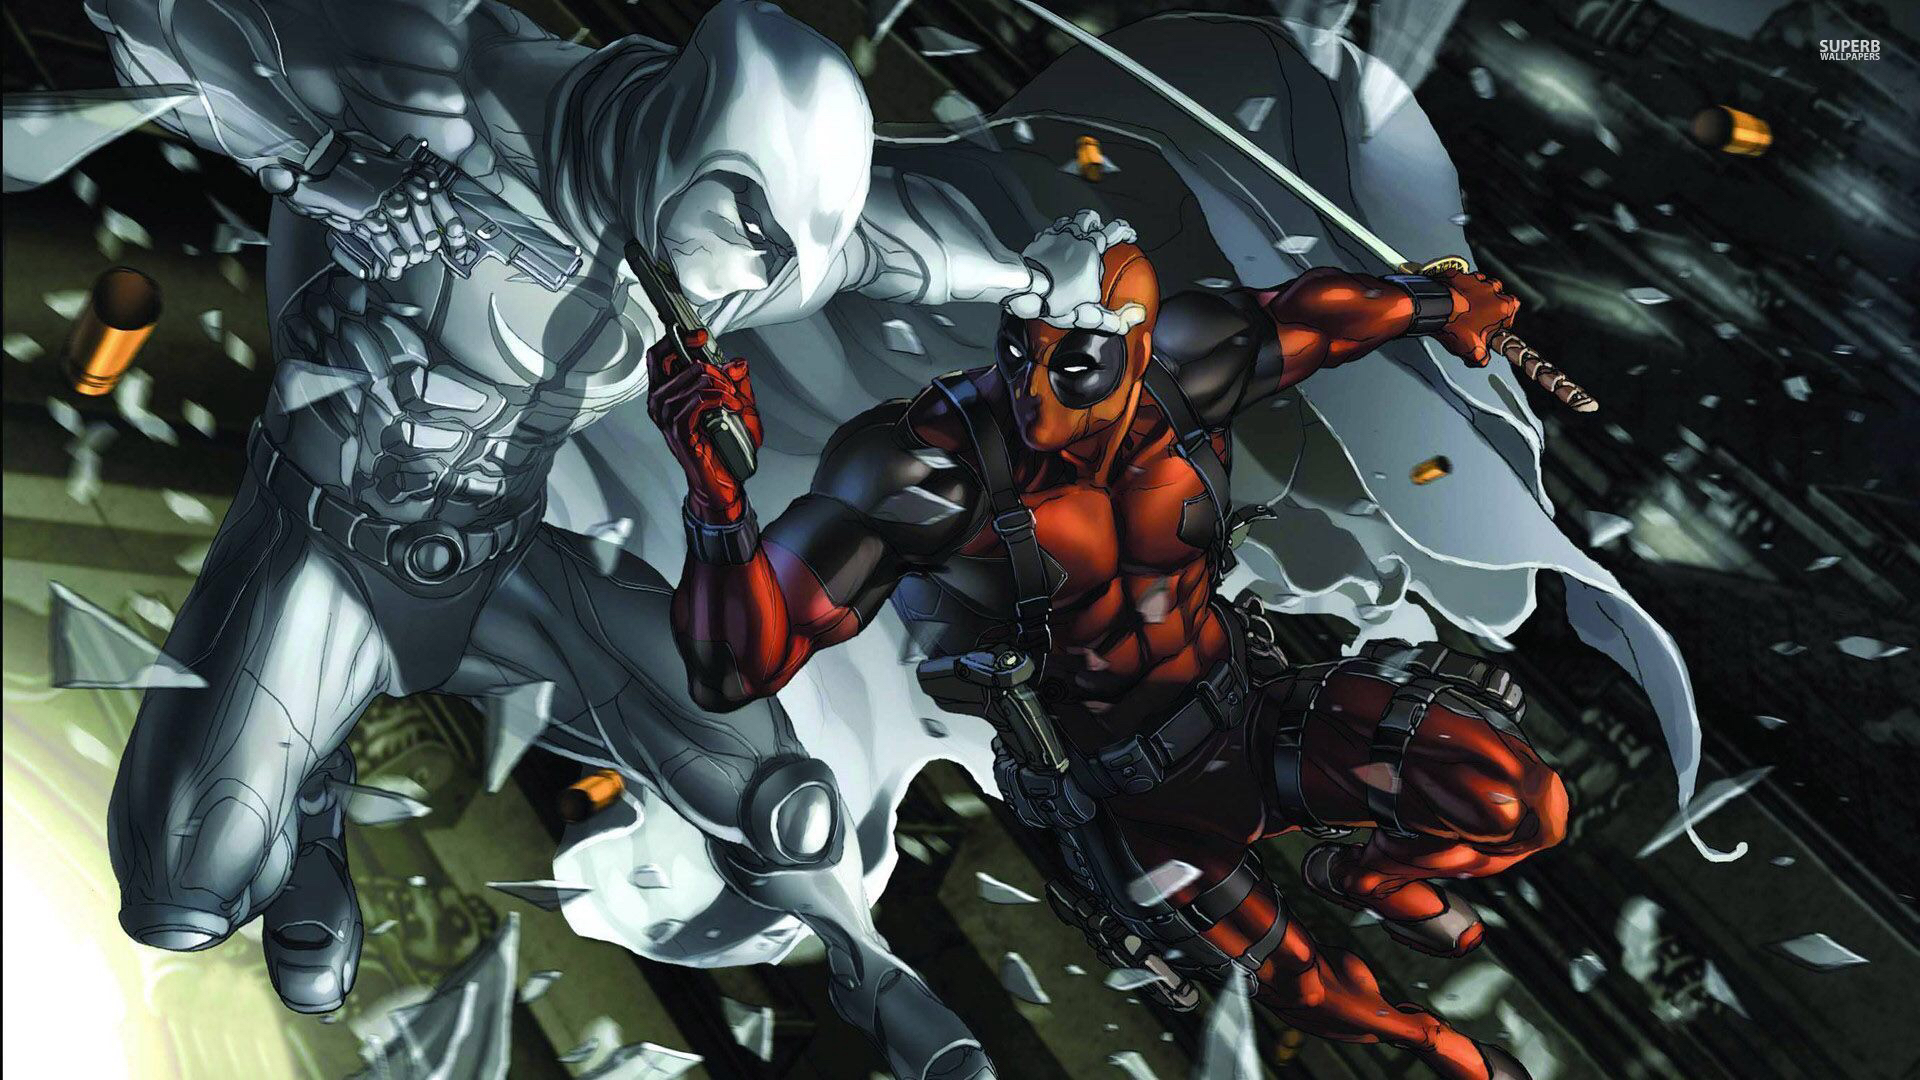 Billede-fra-http-cdn-superb-com-comics-deadpool-1920x1080-wallpaper-wp3403240